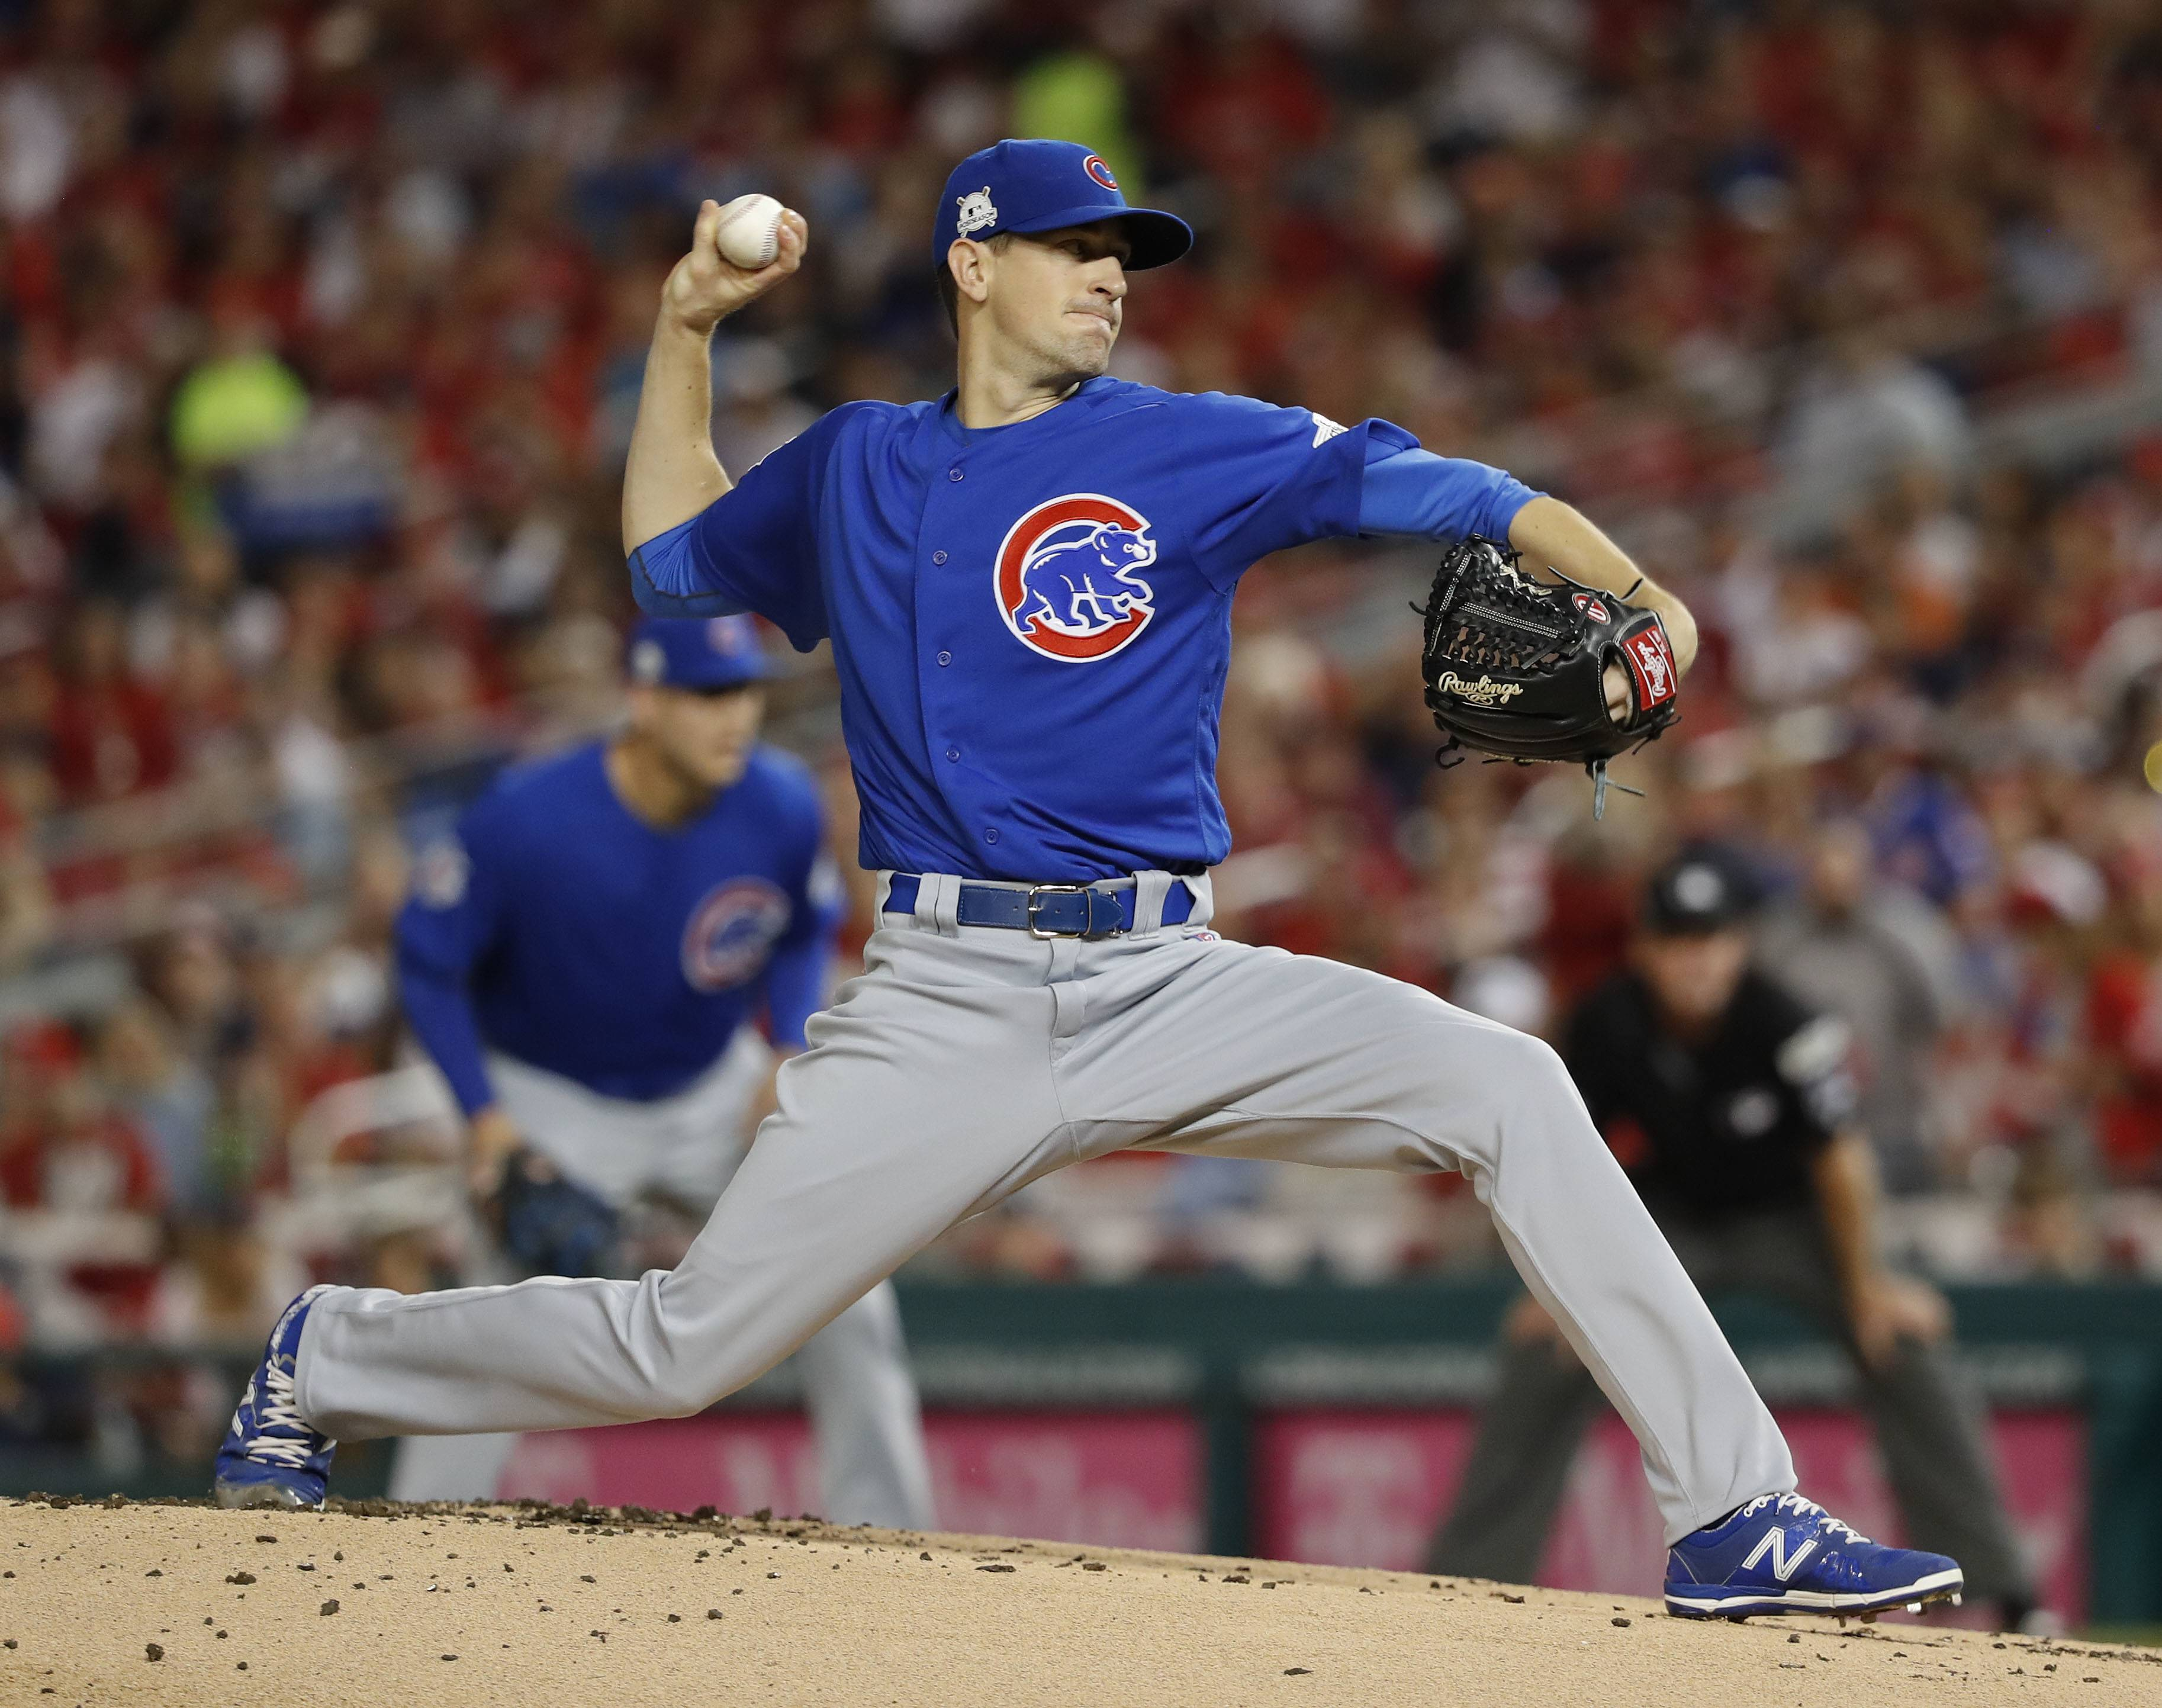 The right man, Kyle Hendricks, will start Game 5. He has pitched as well as anybody in the game down the stretch. If the Cubs do manage to win, they likely will go with Jose Quintana in Game 1 of the NLCS on Saturday because Jon Lester worked 3⅔ innings Wednesday.